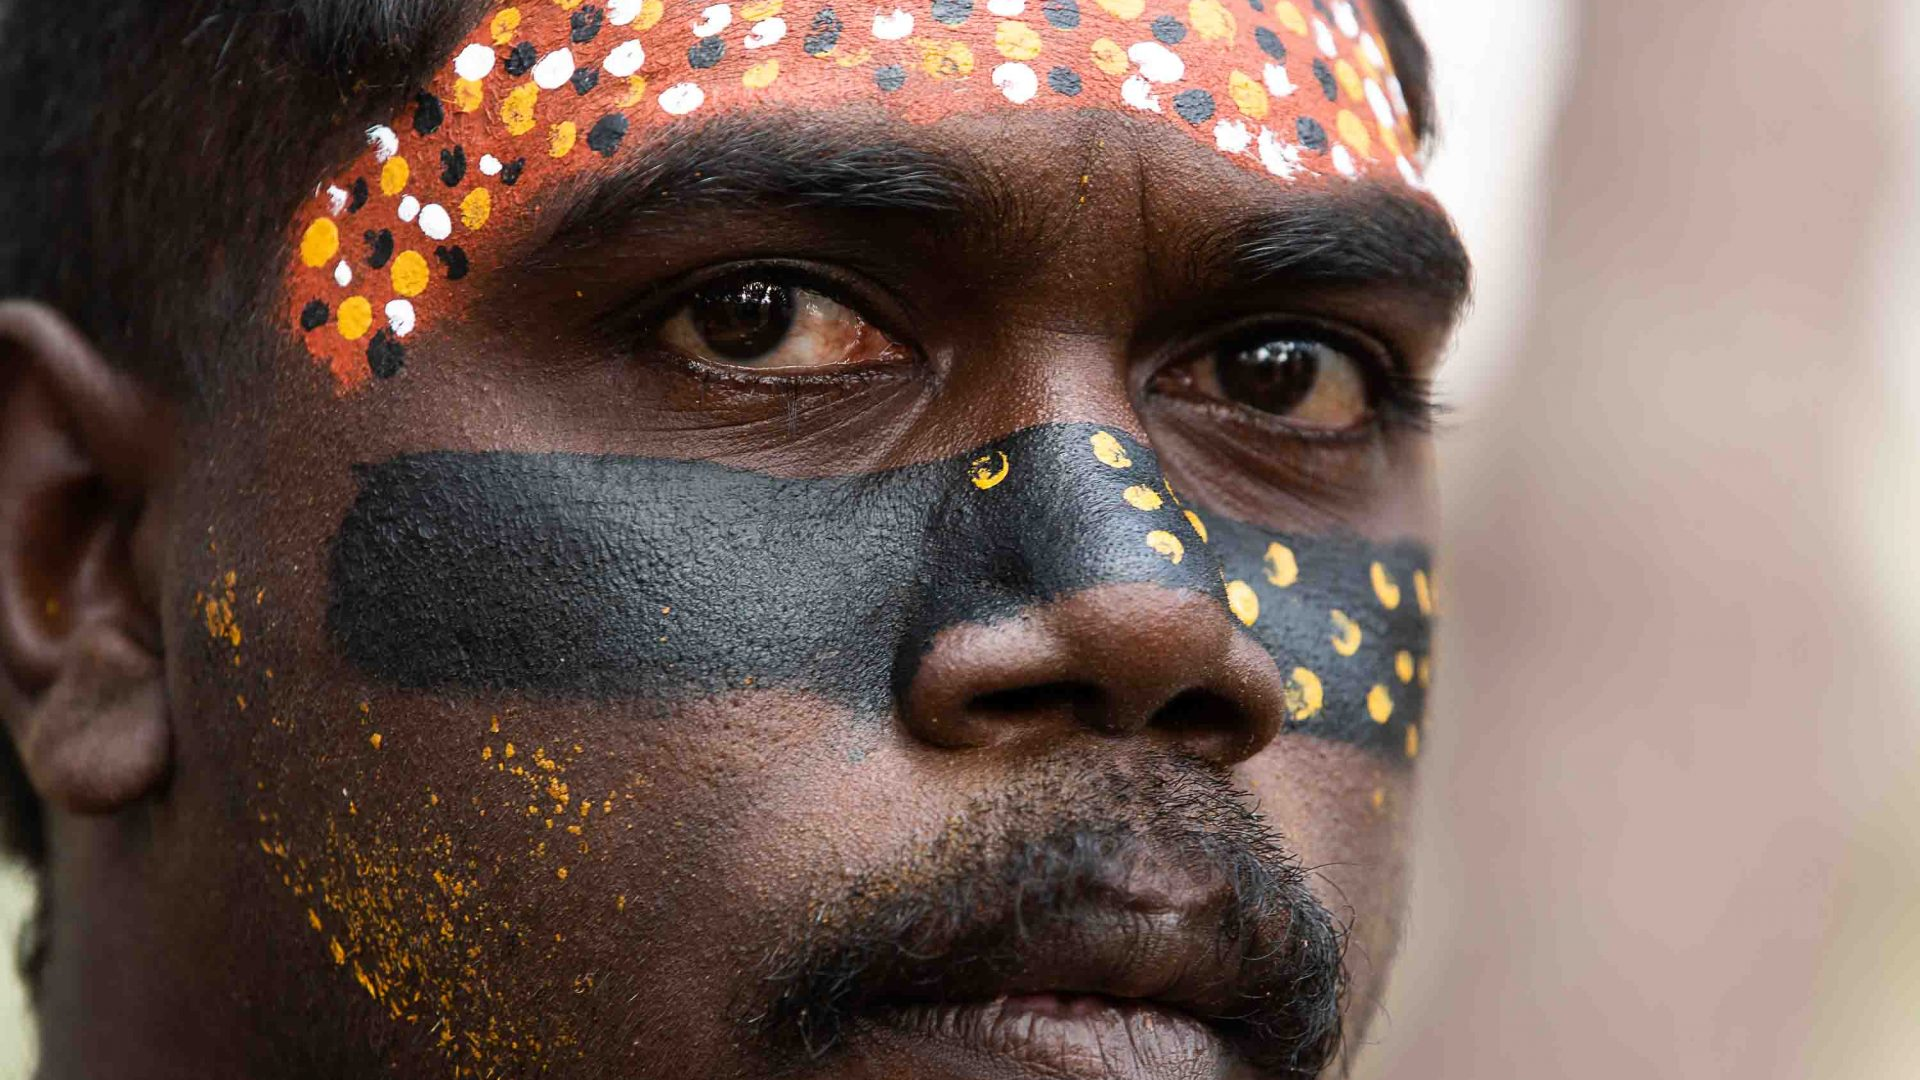 A close up of a painted man's face.